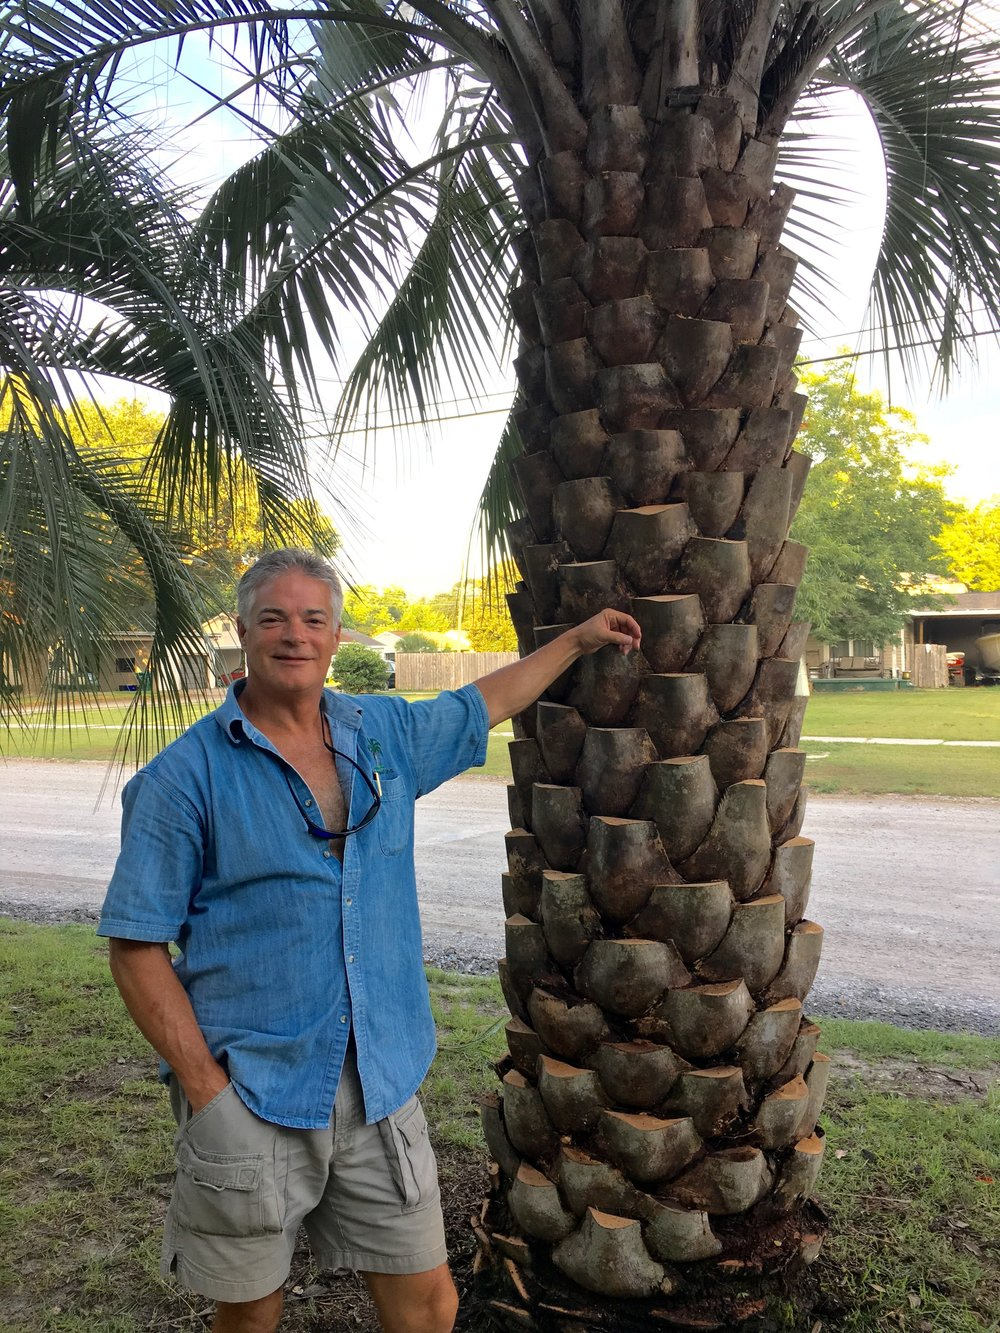 Michael Gautier - Owner/Operator of Mule Palms of Mississippi